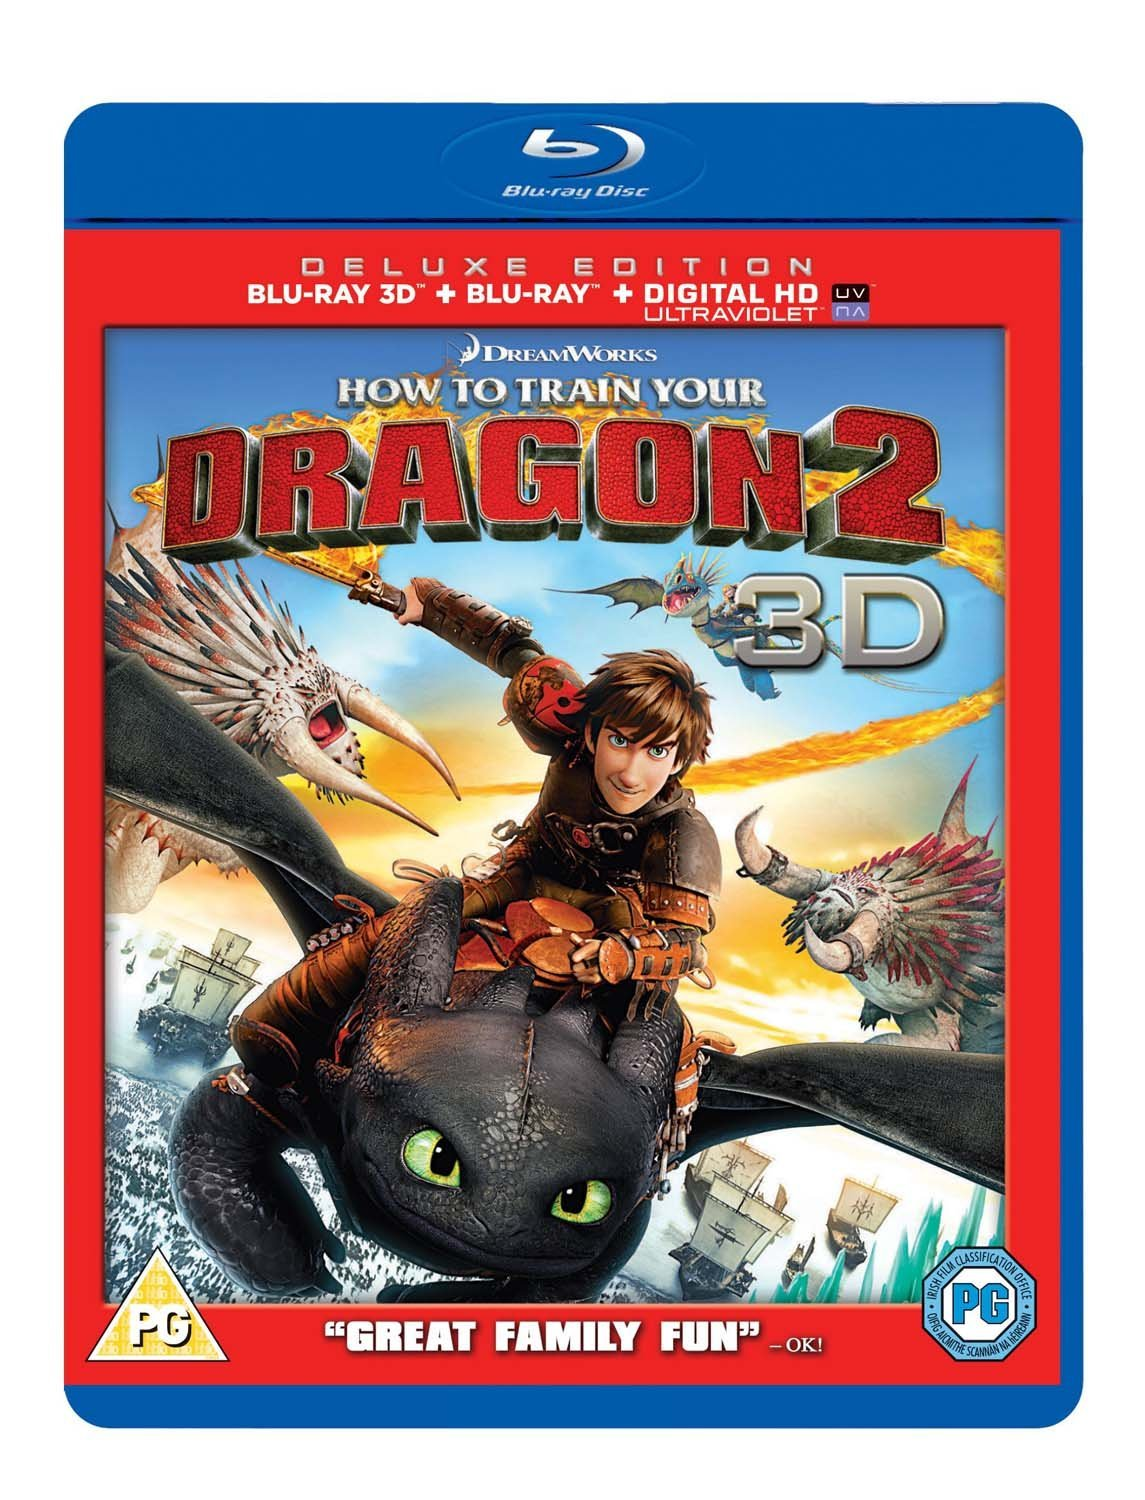 How to Train Your Dragon 2 (Blu-ray 3D + Blu-ray + UV Copy)